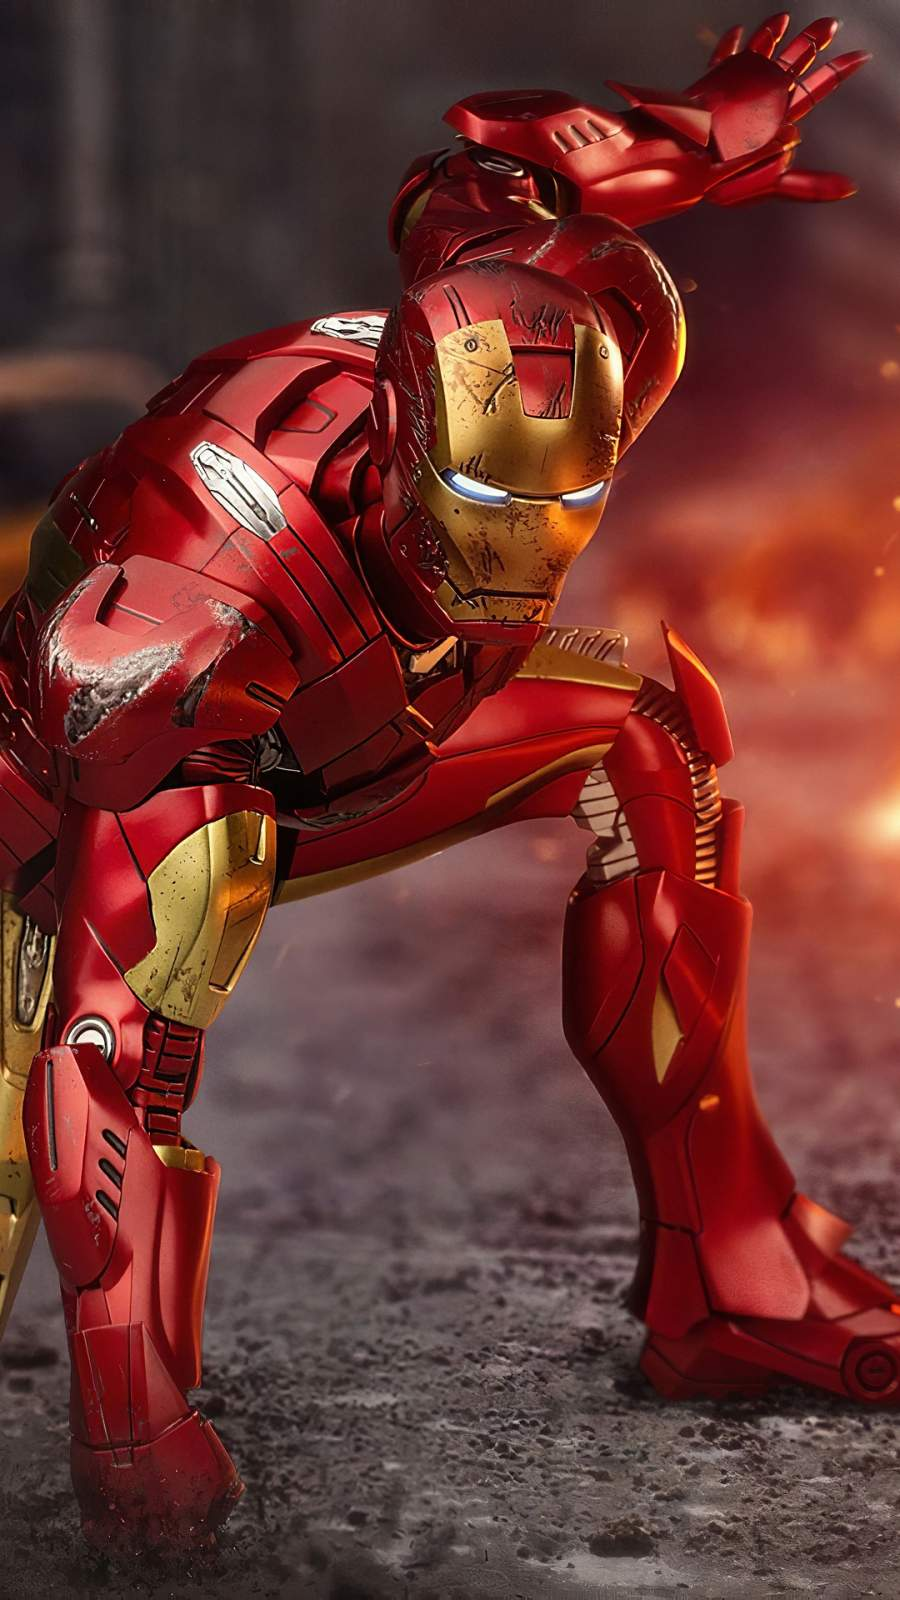 Iron Man Ready for Fight iPhone Wallpaper